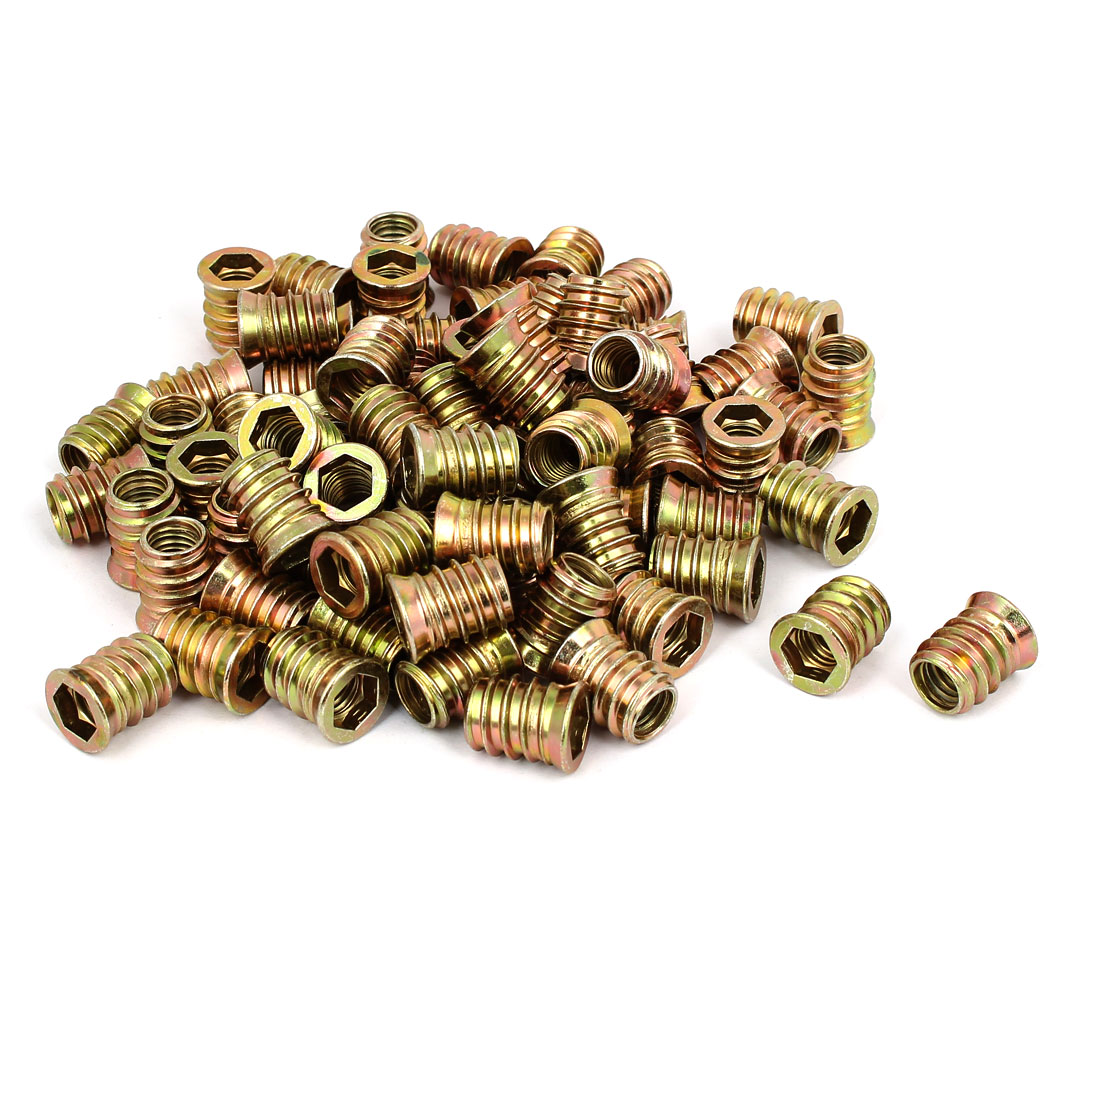 10mm x 20mm Wood Furniture Insert Interface E-Nut Hex Socket Nut Fitting 80PCS